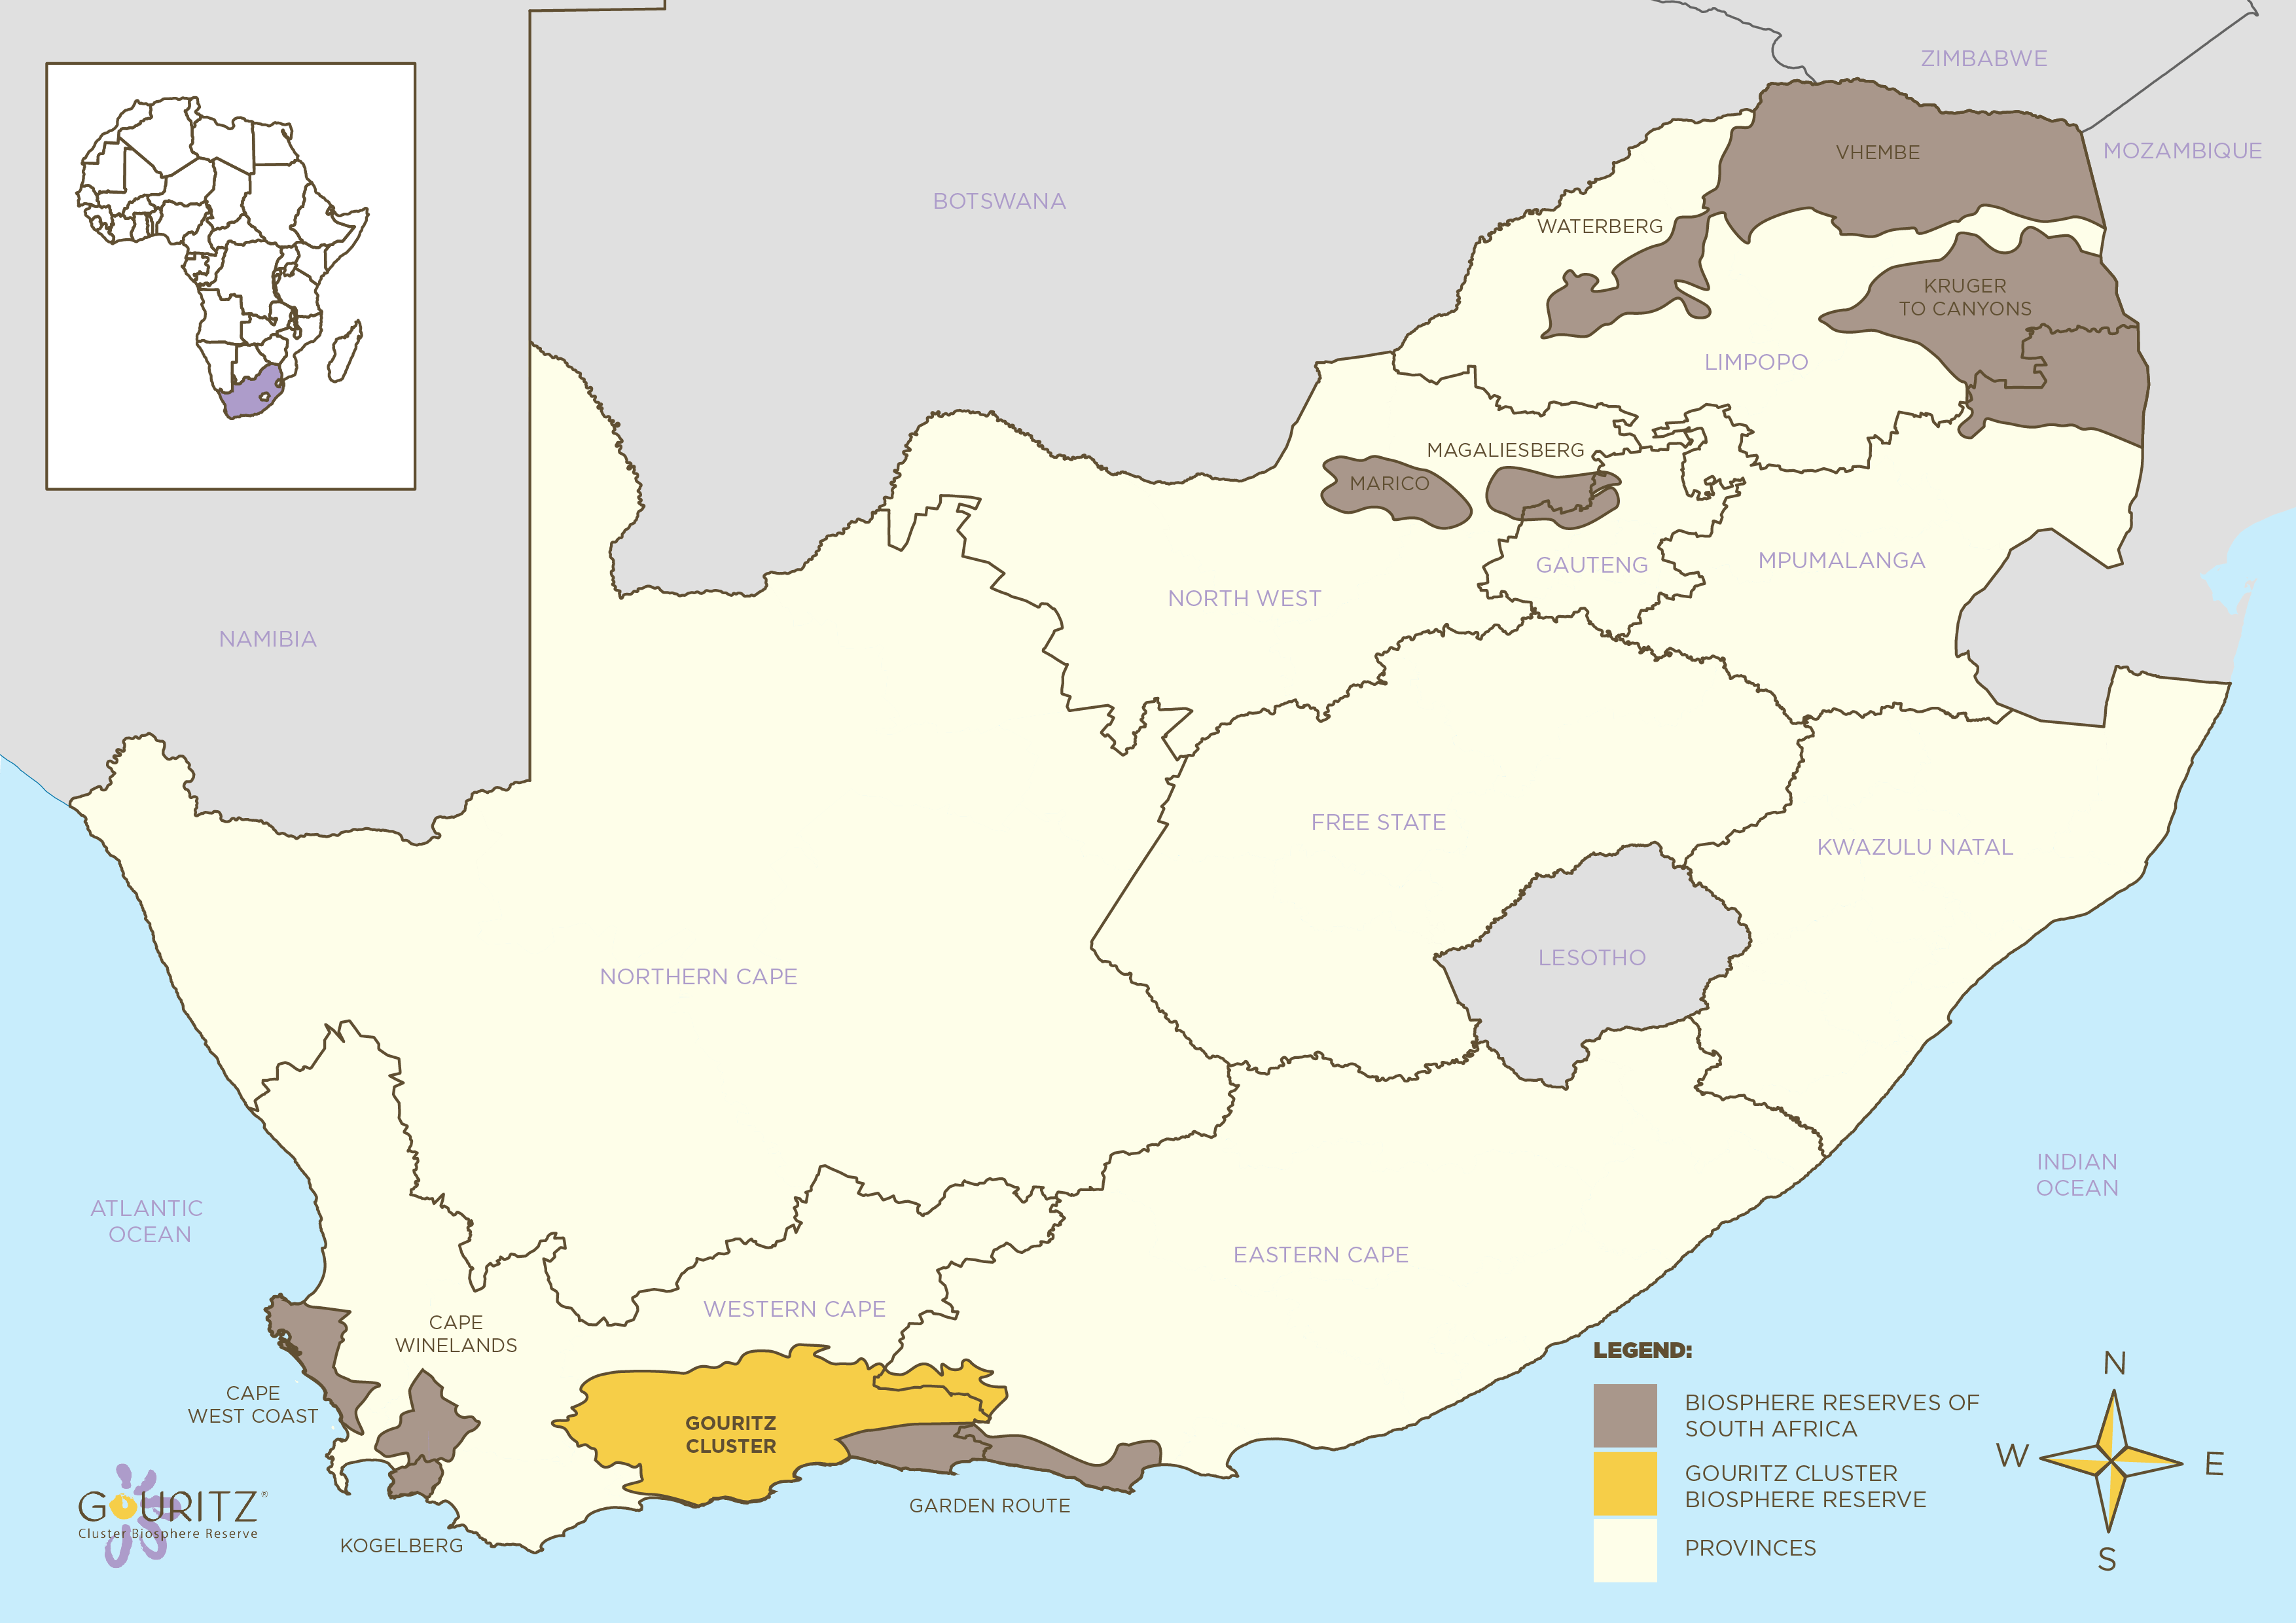 GCBR Location in South Africa